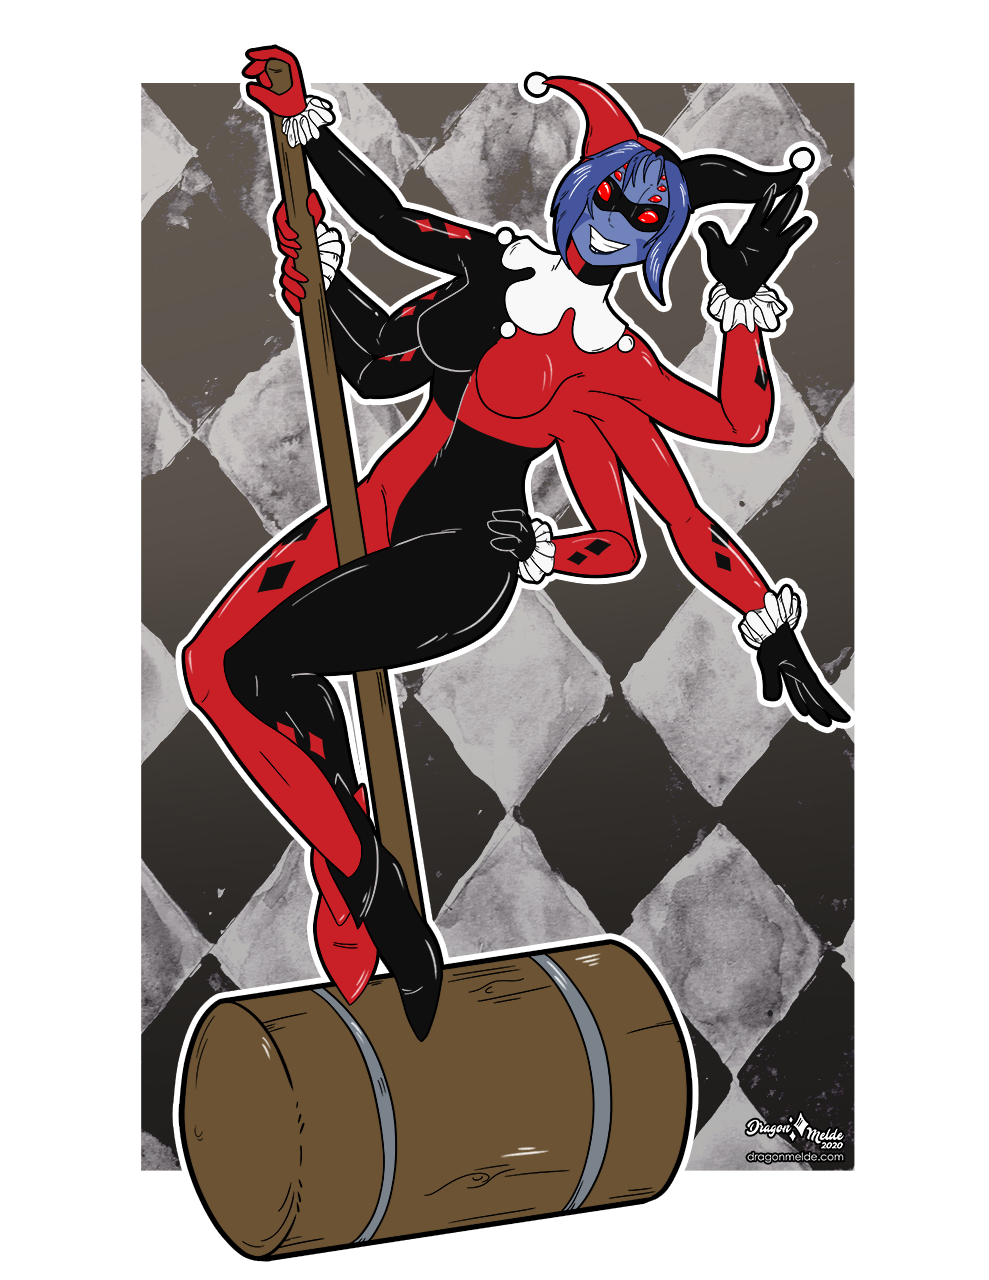 Convention Bingo Wing-its: Harley Quinn